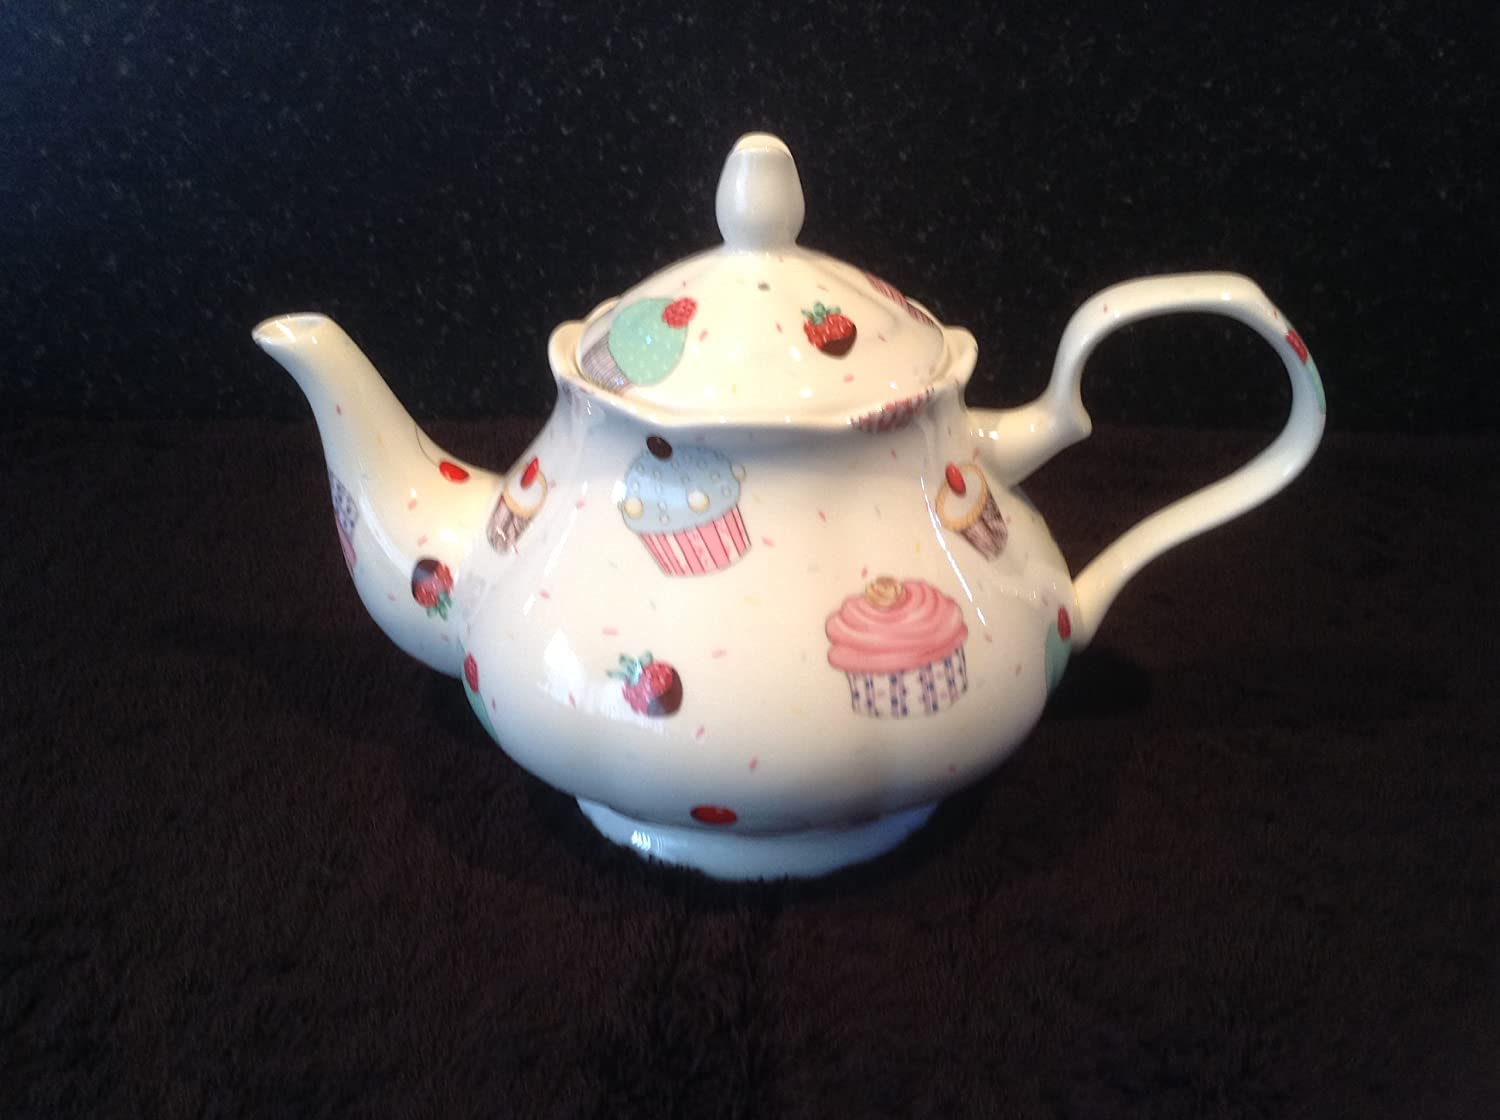 CUP CAKES BONE CHINA 6 CUP TEA POT FREE NEXT DAY DELIVERY IN UK